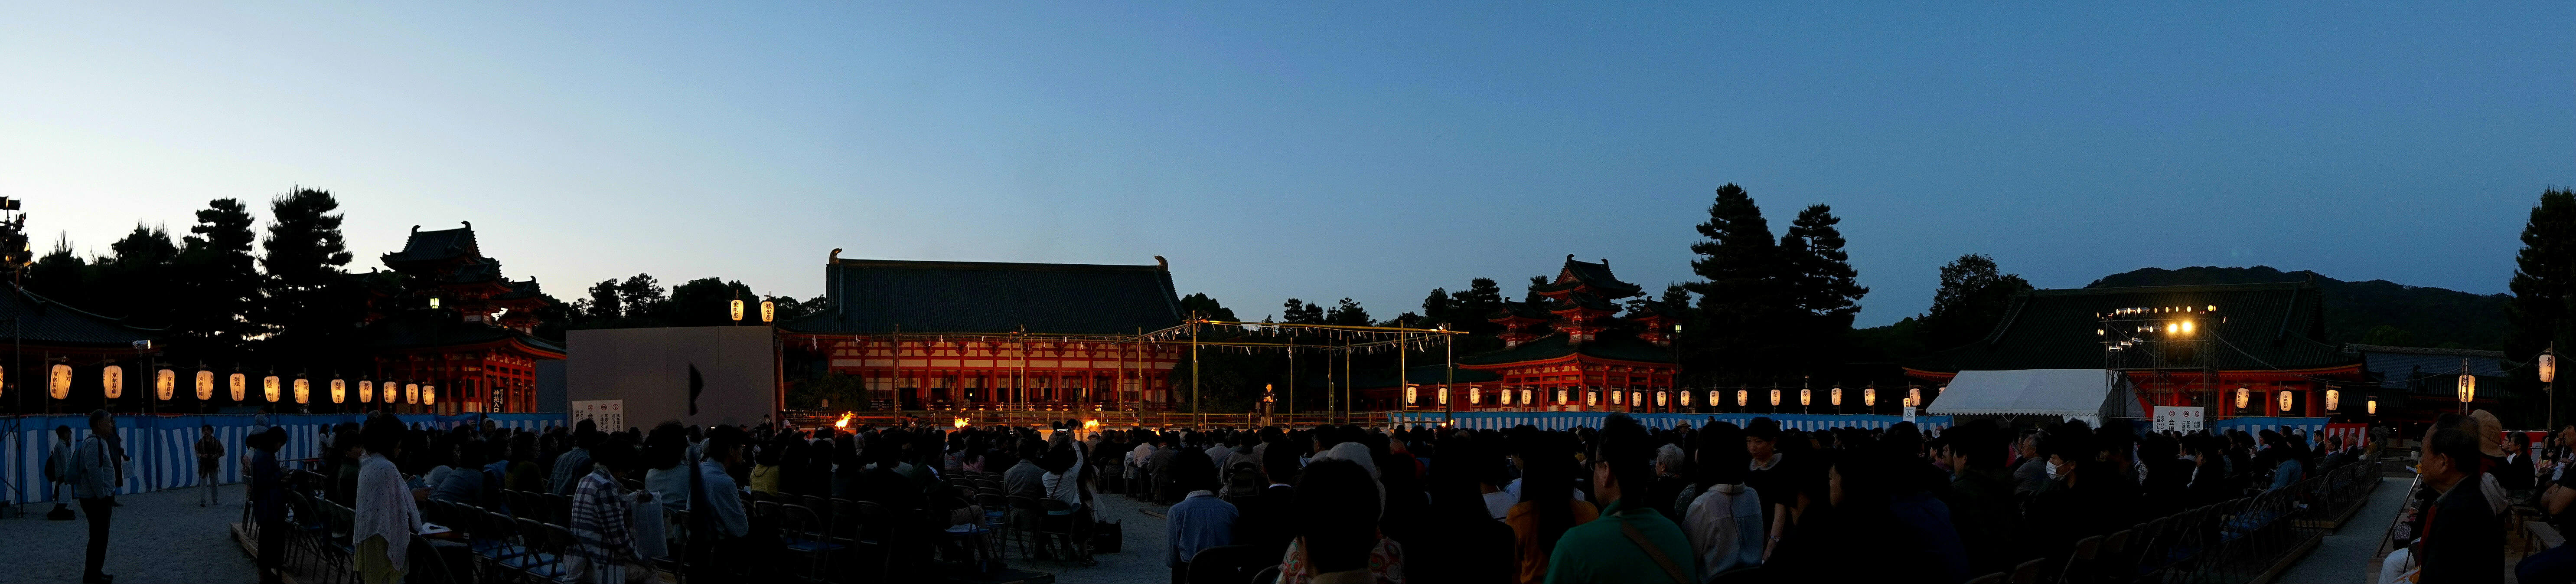 the whole view of Kyoto Takigi-noh venue